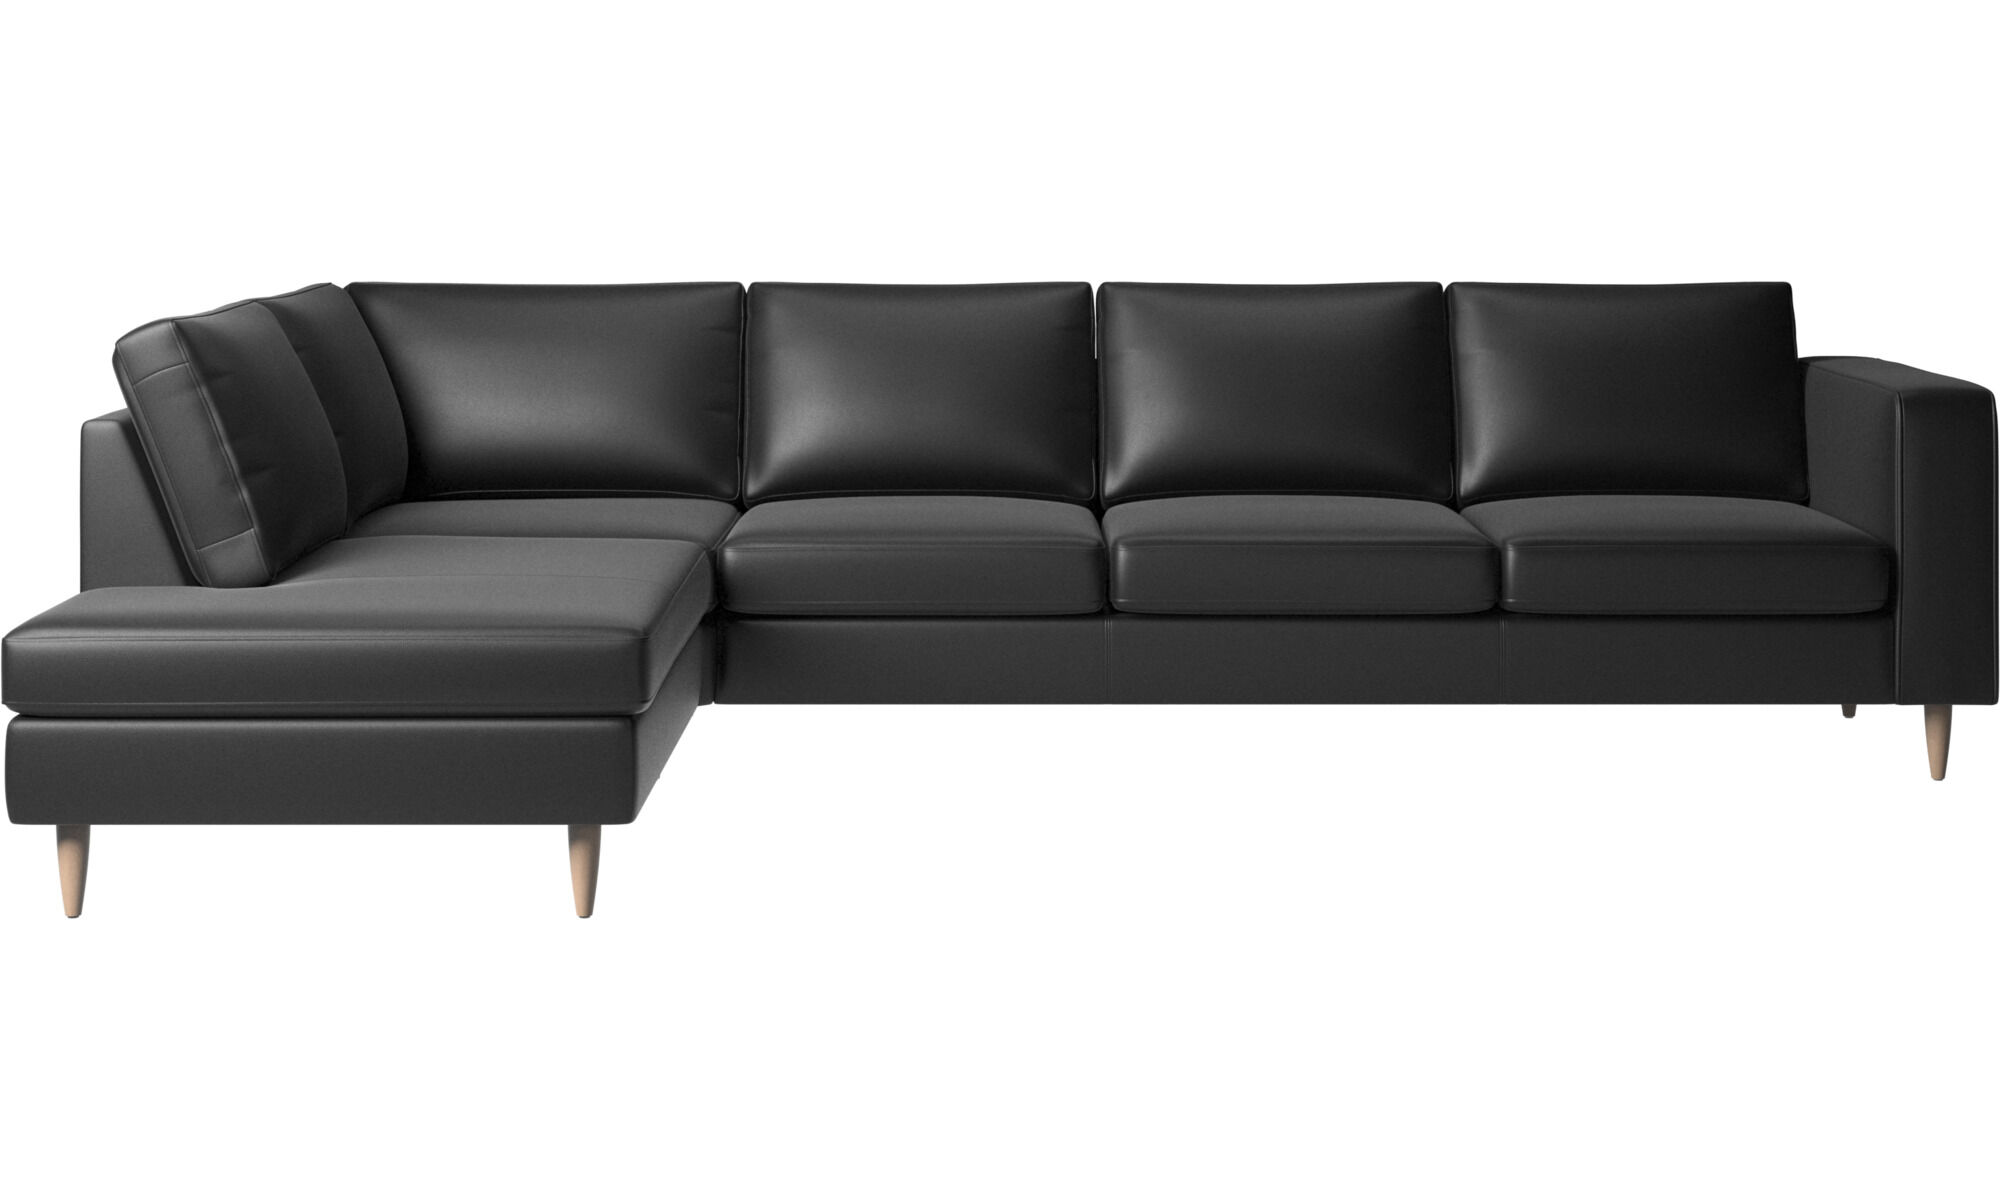 Sofas With Open End   Indivi 2 Corner Sofa With Lounging Unit   Black    Leather